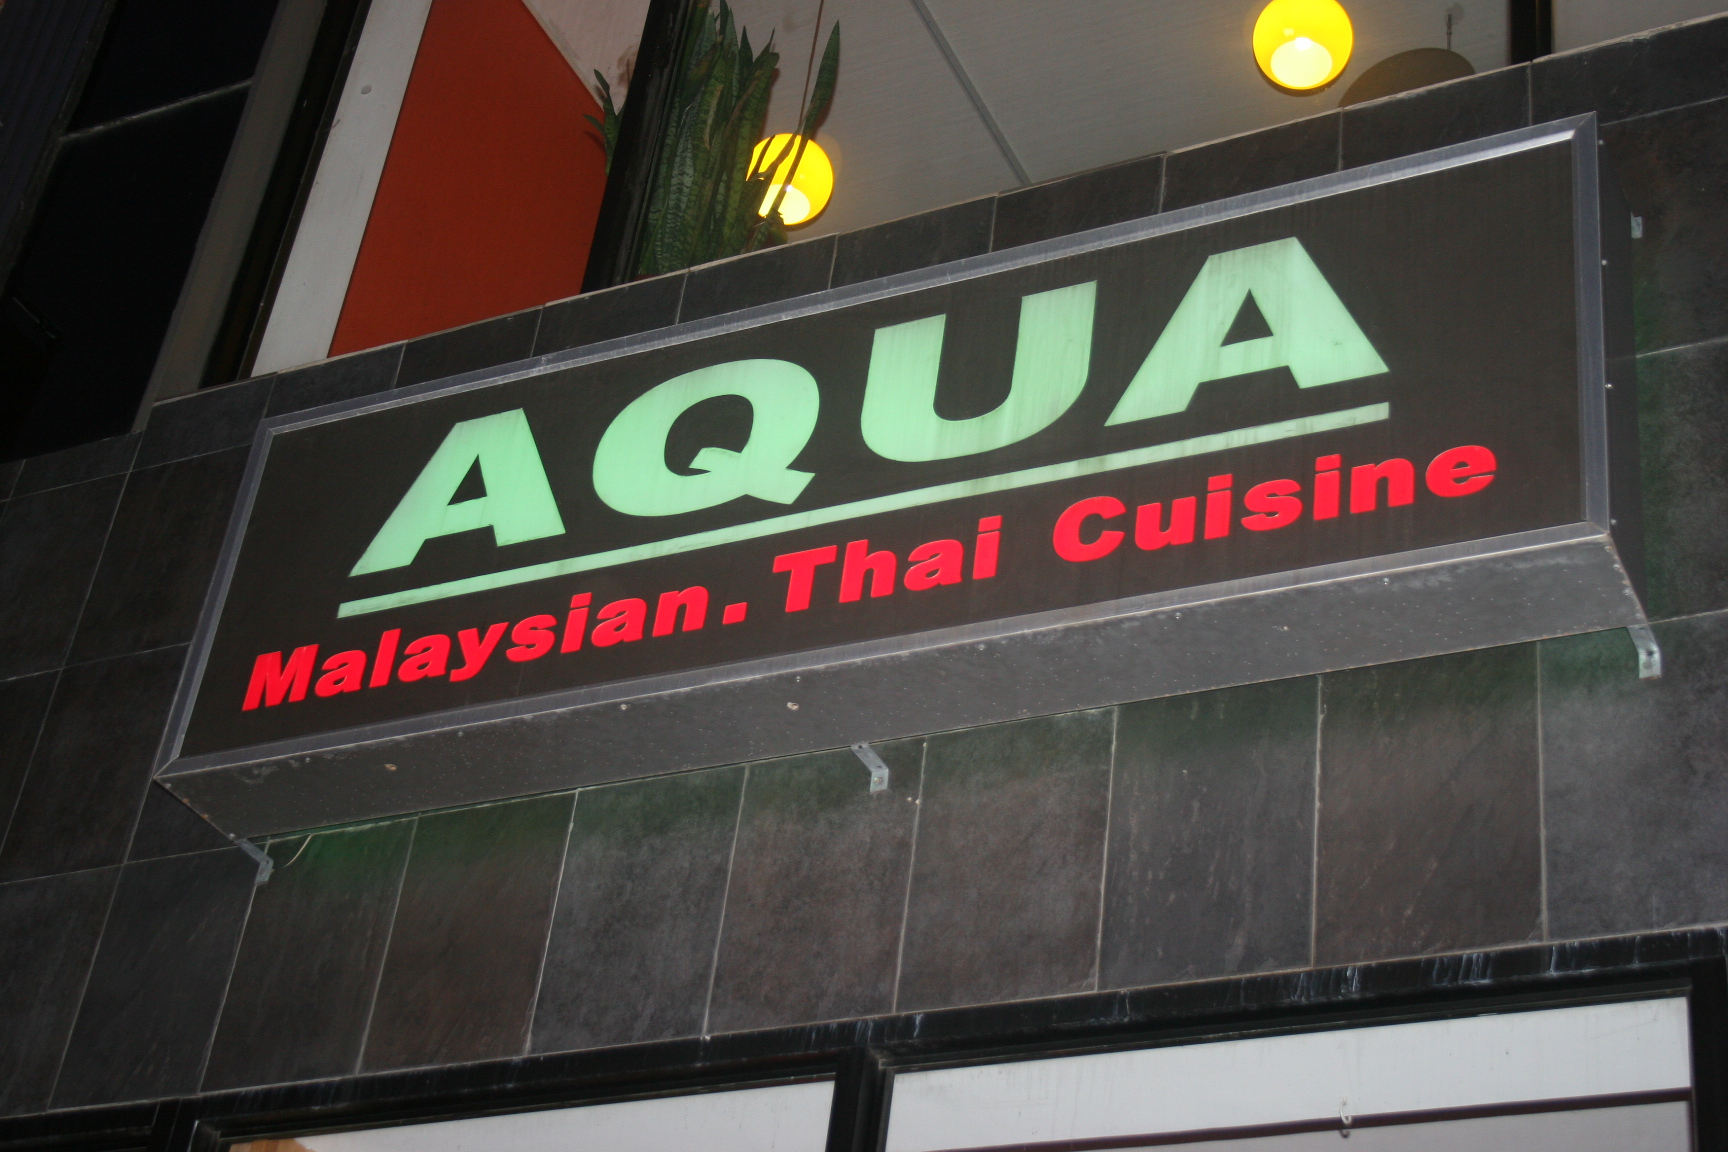 Aqua south jersey wine dine for Aqua malaysian thai cuisine